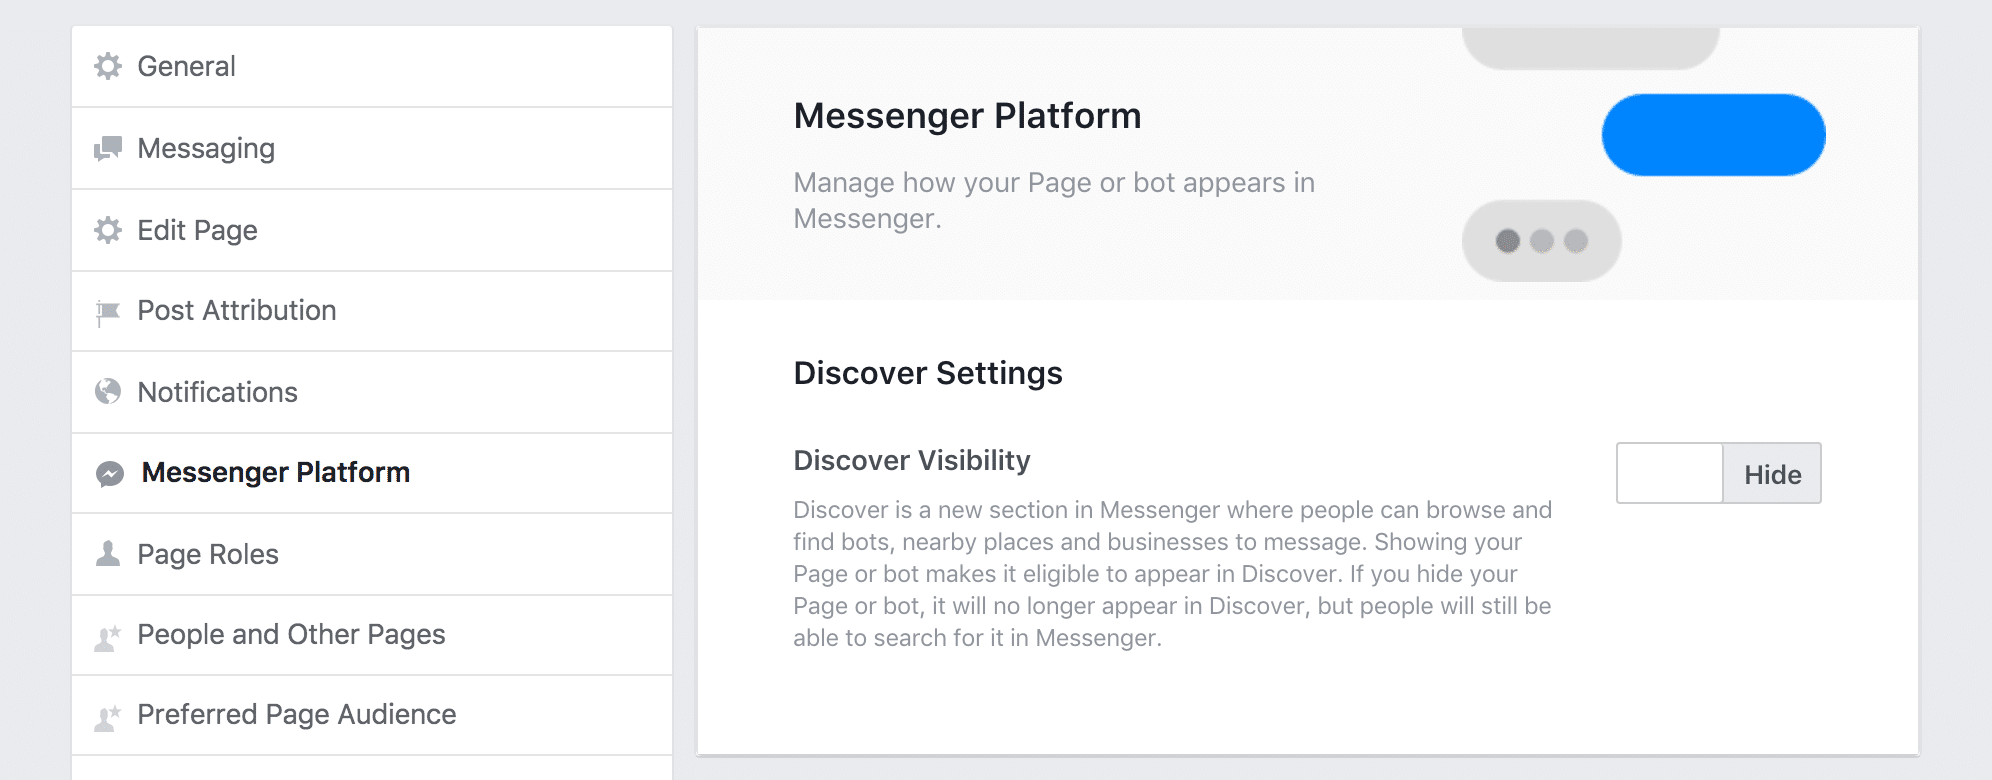 Discover settings for Facebook's Messenger Platform